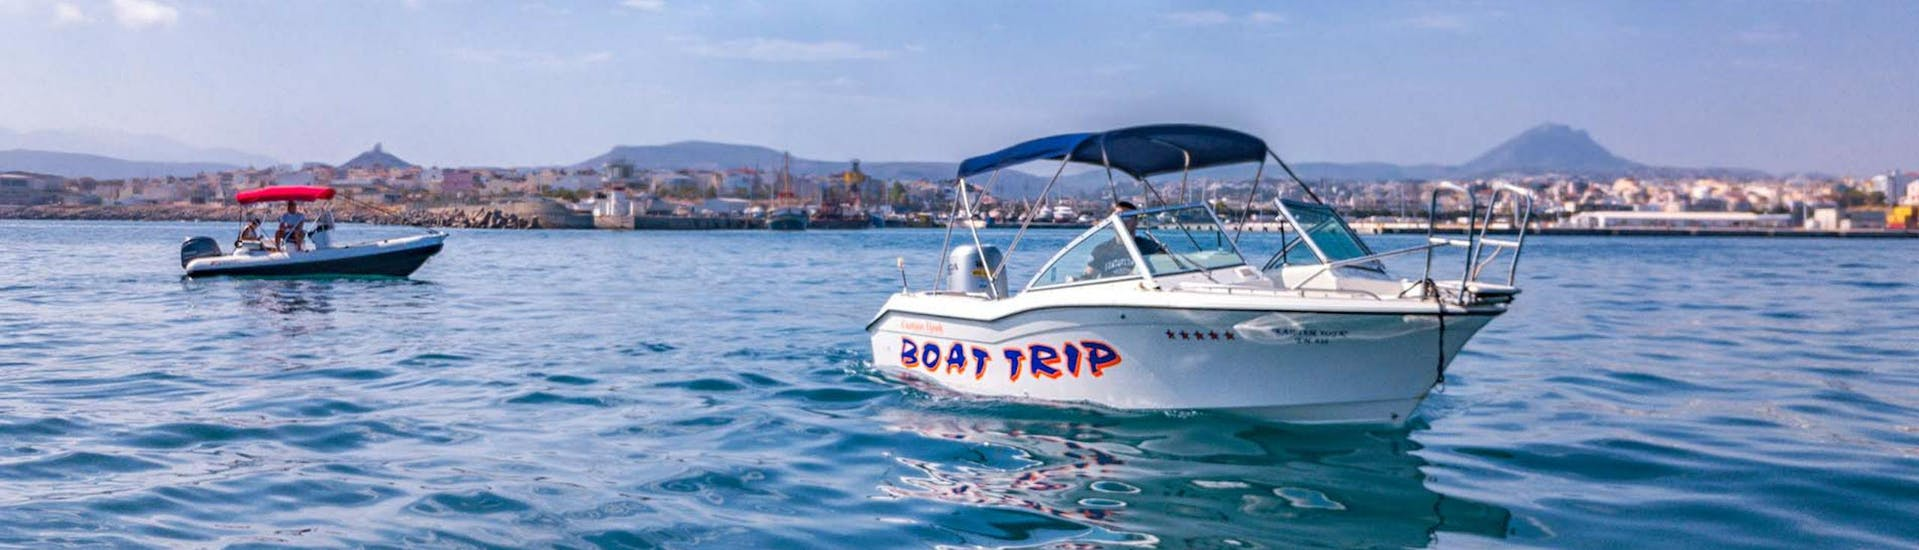 Private Boat Trip 'Snorkeling and Fishing' from Heraklion